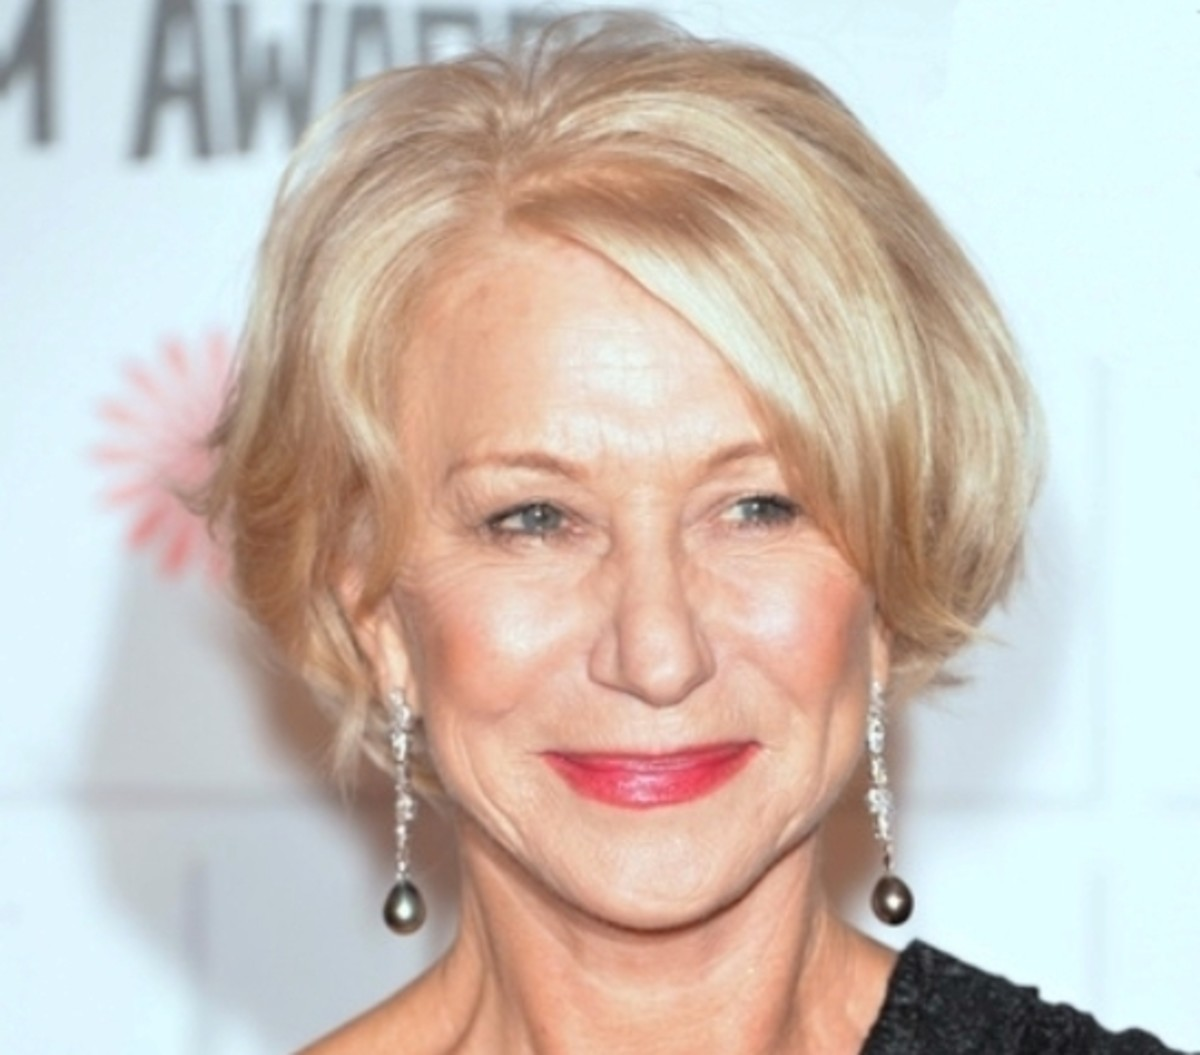 """Helen Mirren played Ayn Rand in the 1999 film """"The Passion of Ayn Rand"""" directed by Christopher Menaul based on the book by Barbara Branden"""